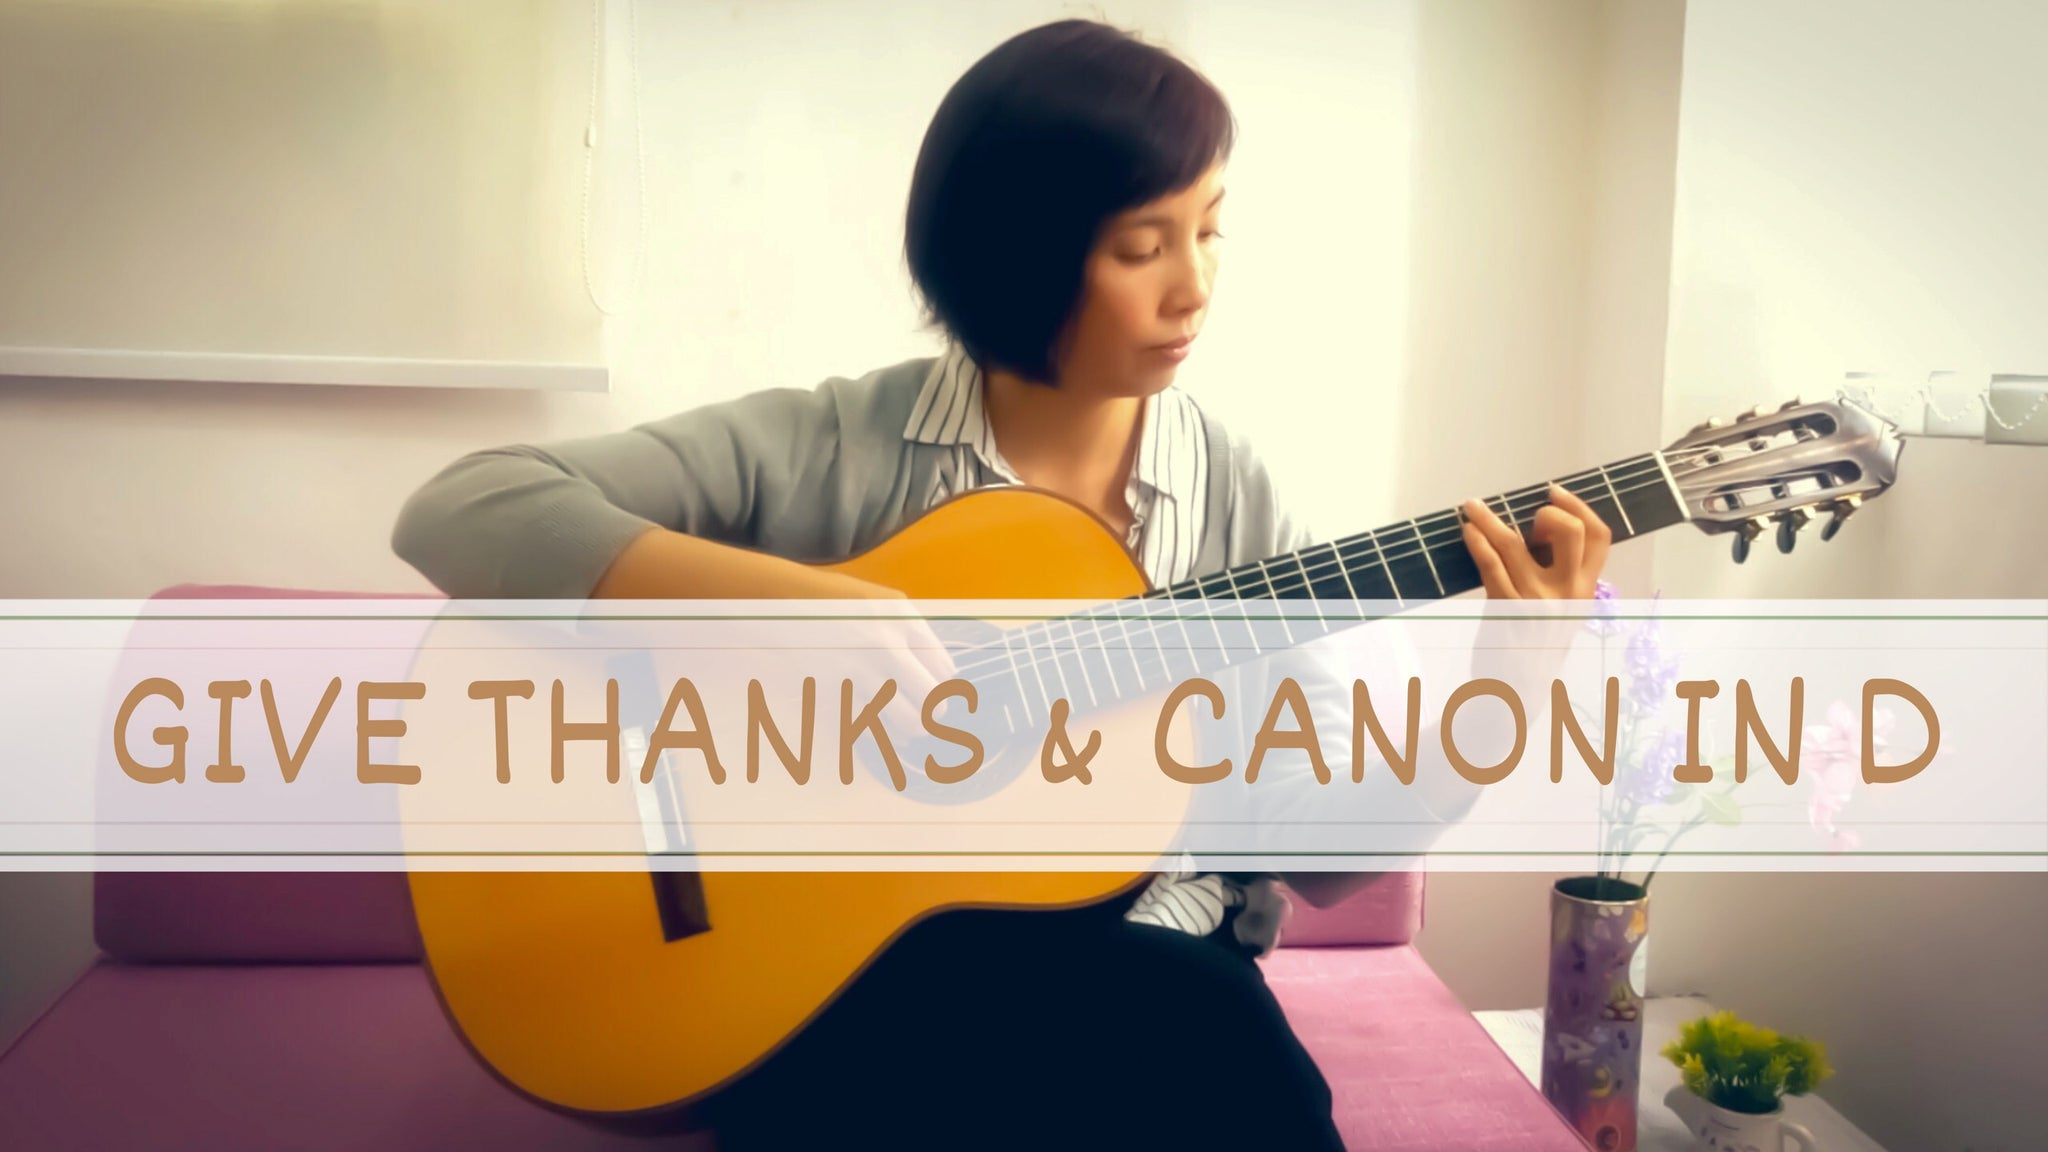 Sheet Music News! - Give Thanks & Canon in D available worldwide